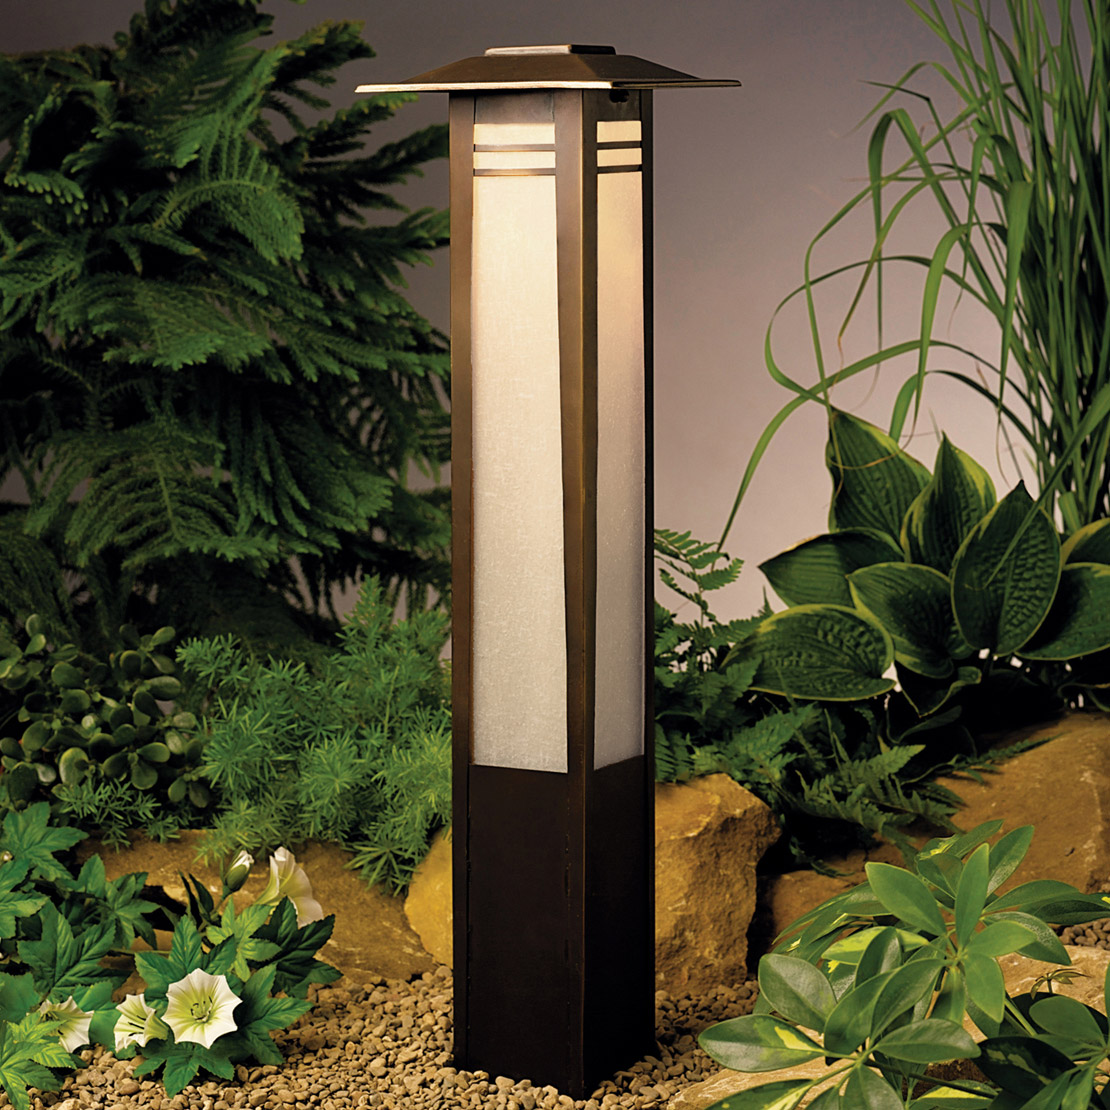 Kichler 15392oz zen garden 12v landscape bollard light aloadofball Image collections